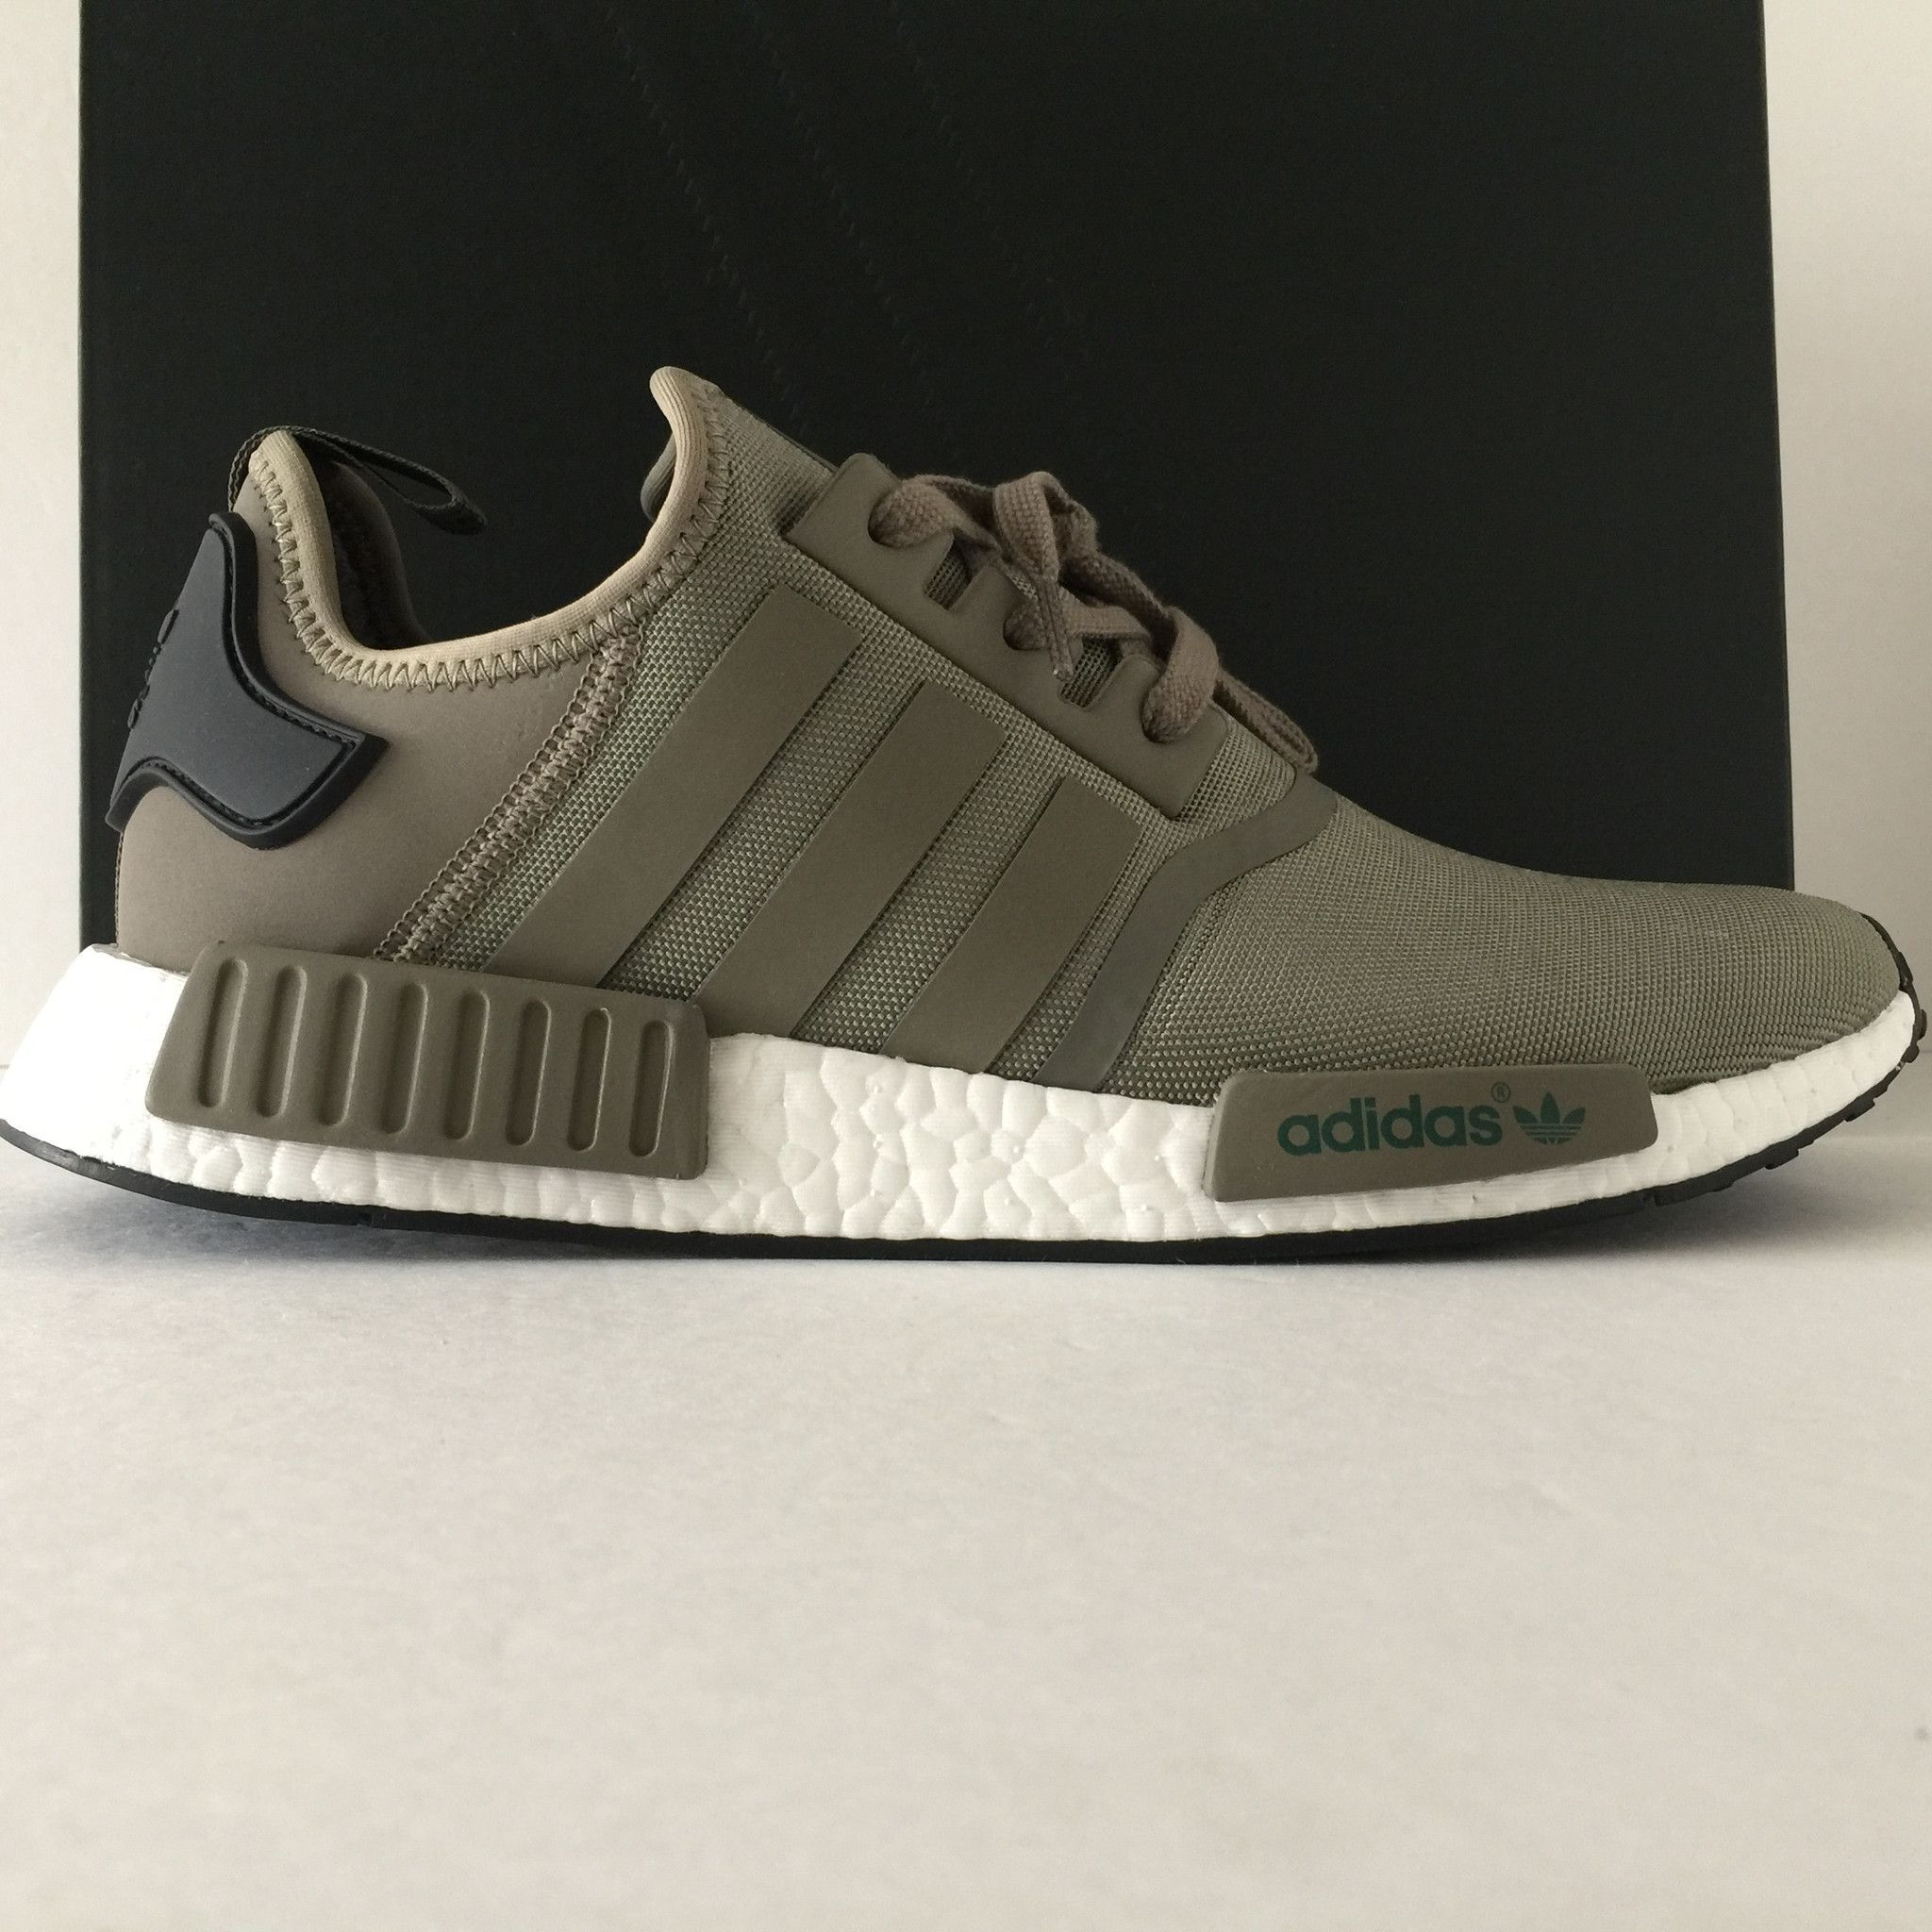 best cheap 7b923 17f9d Name Adidas NMD R1 Trace Cargo Trail Size 11.5, 13 Condition Brand New   OG Box Style Code BA7249 Year 2016